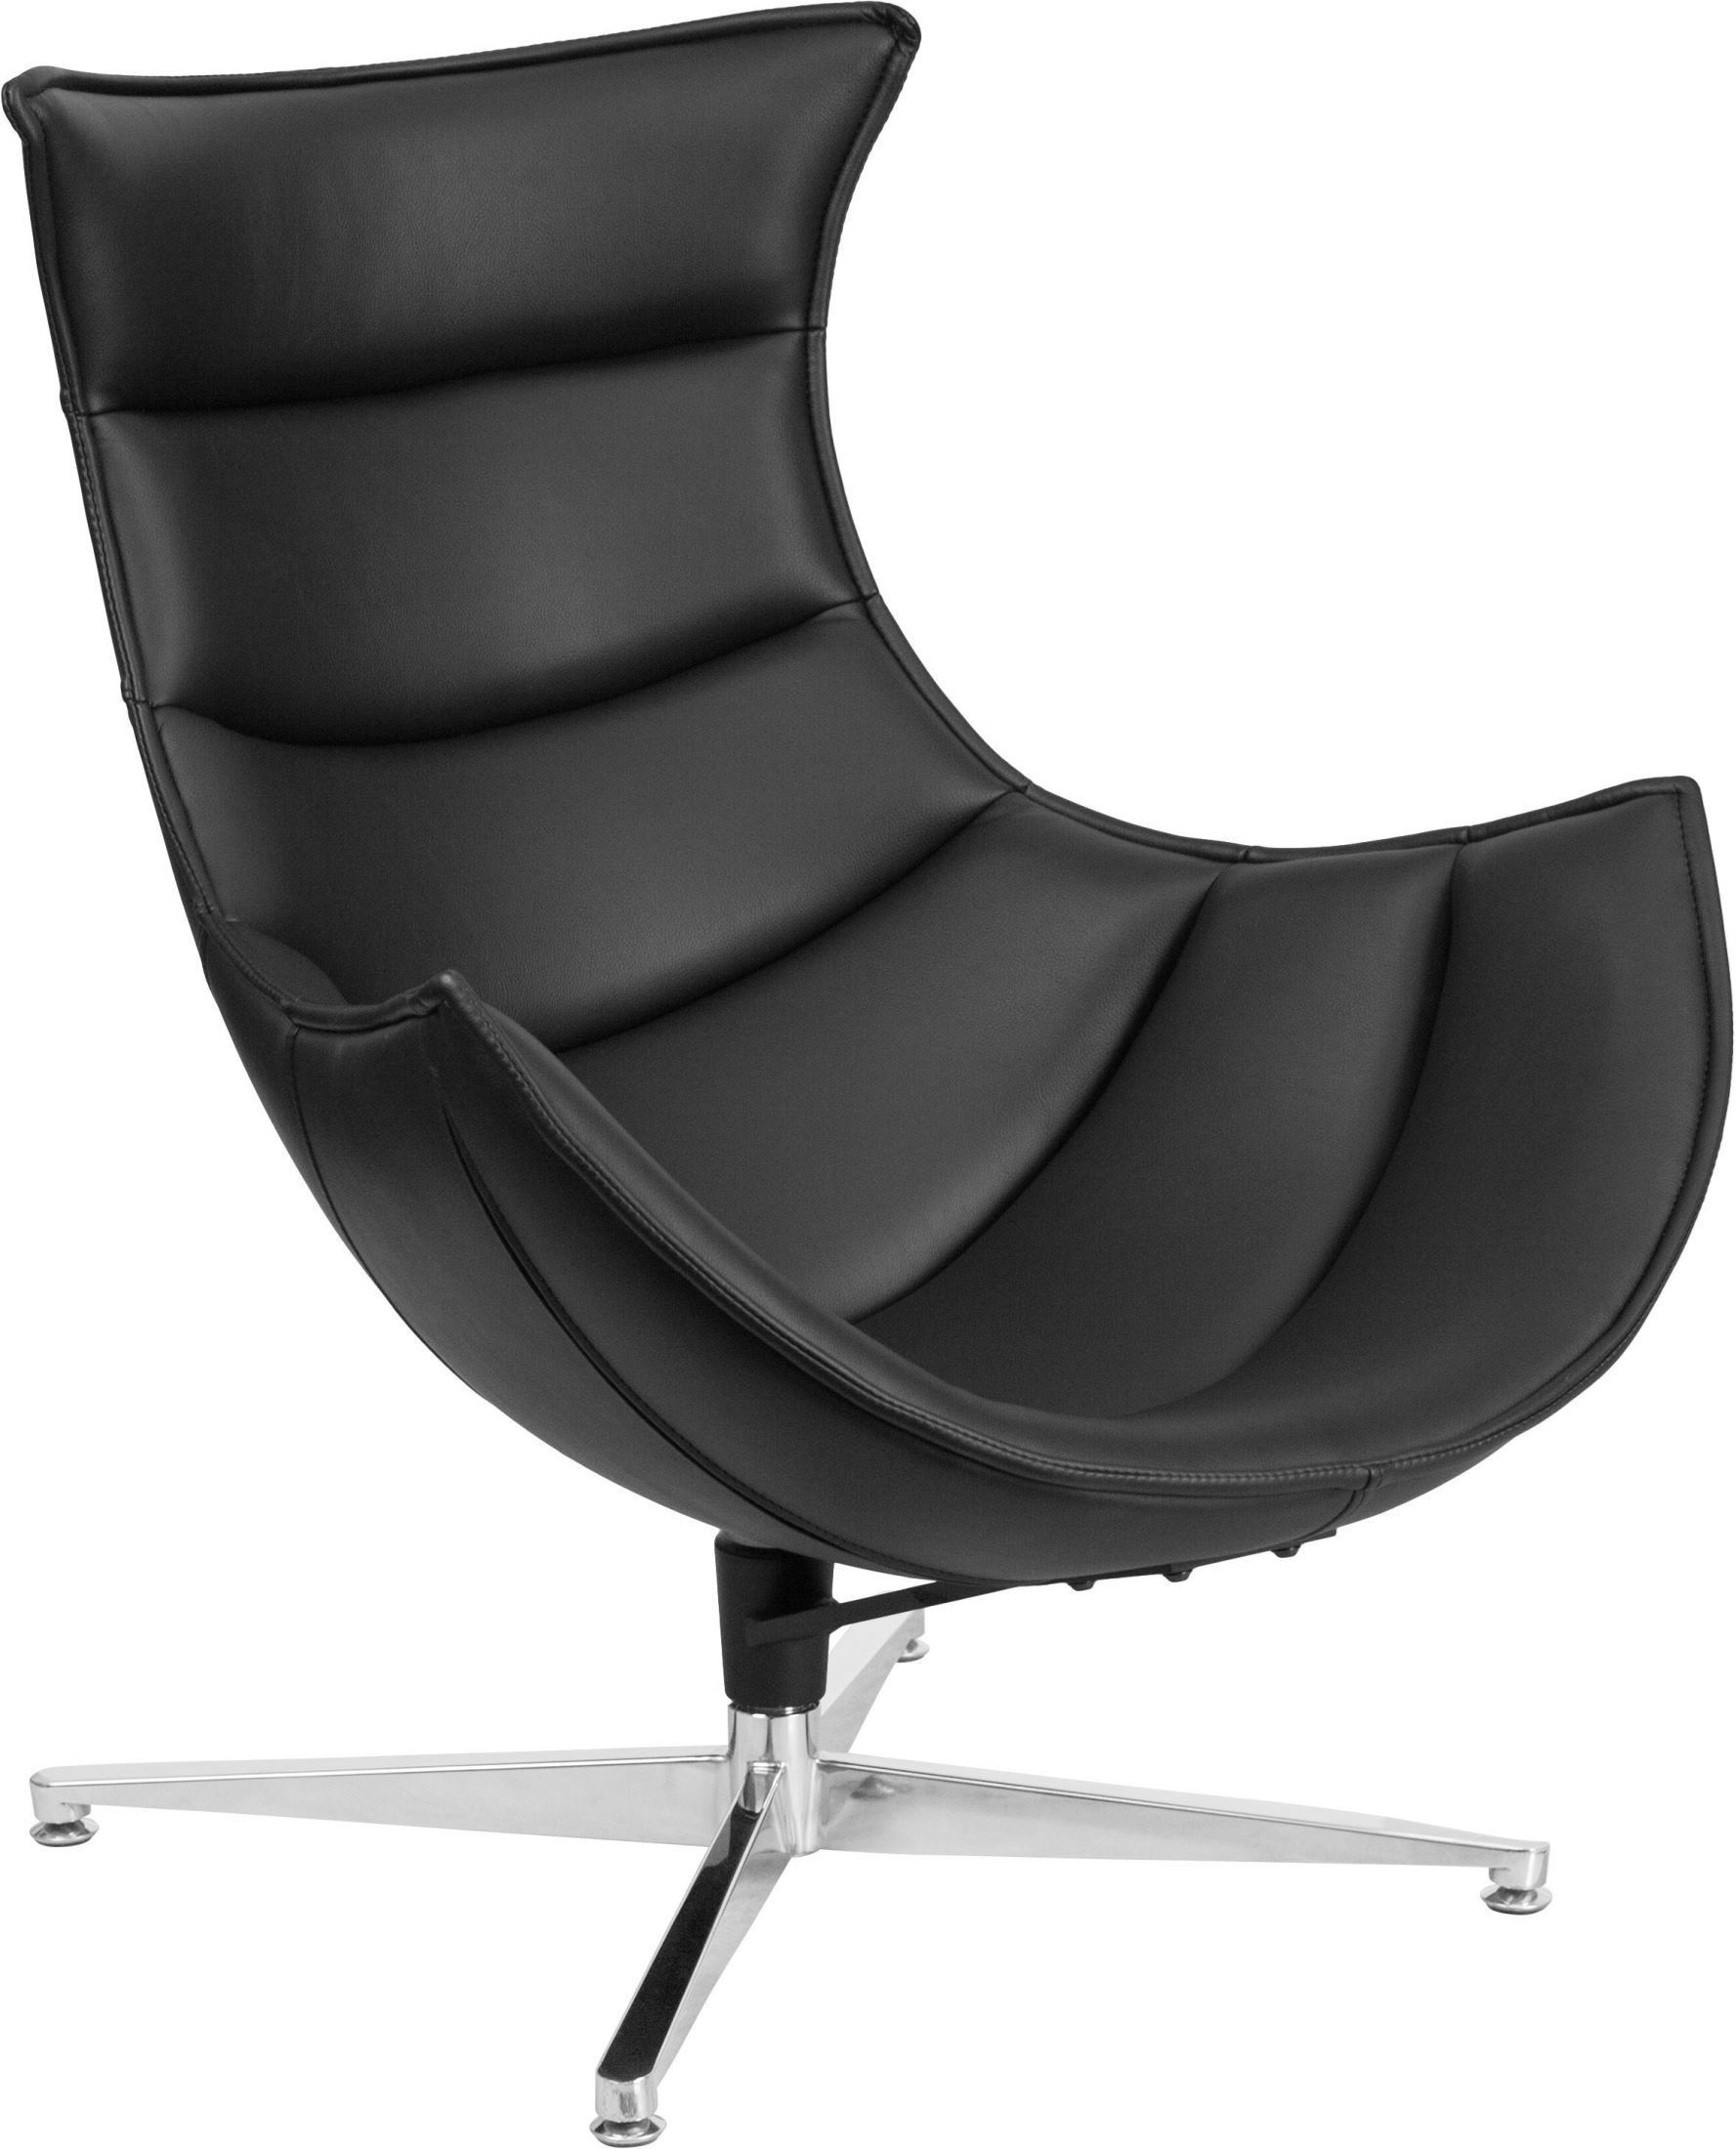 Cocoon Chair Black Leather Swivel Cocoon Chair Zb 31 Gg Renegade